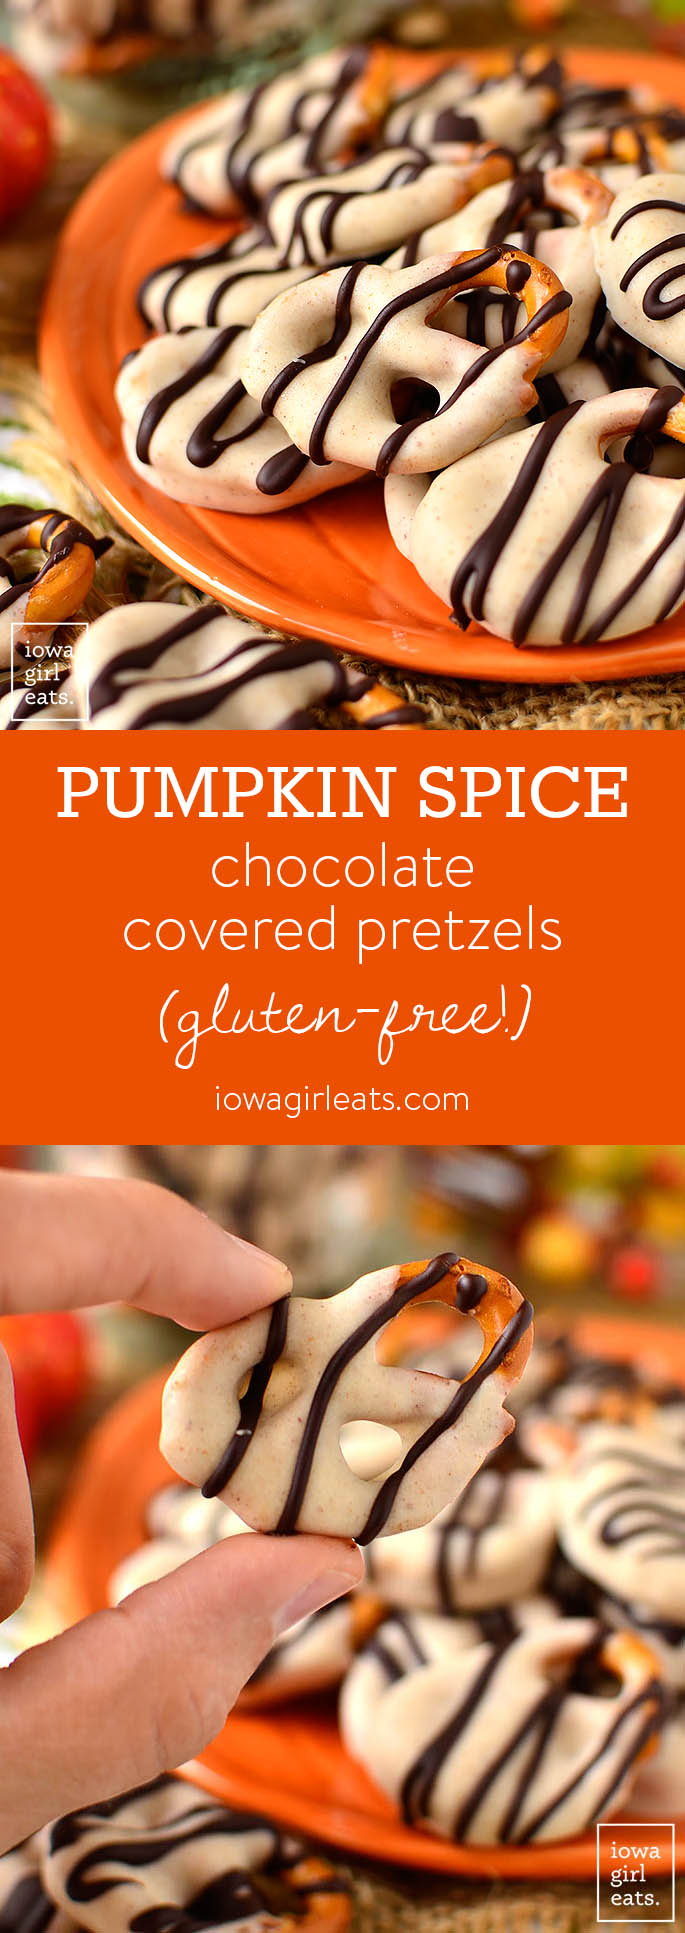 Pumpkin Spice Chocolate Covered Pretzels are absolutely irresistable - dare you to stop at just one! This easy gluten-free dessert recipe calls for just 4 ingredients, and 15 minutes. | iowagirleats.com